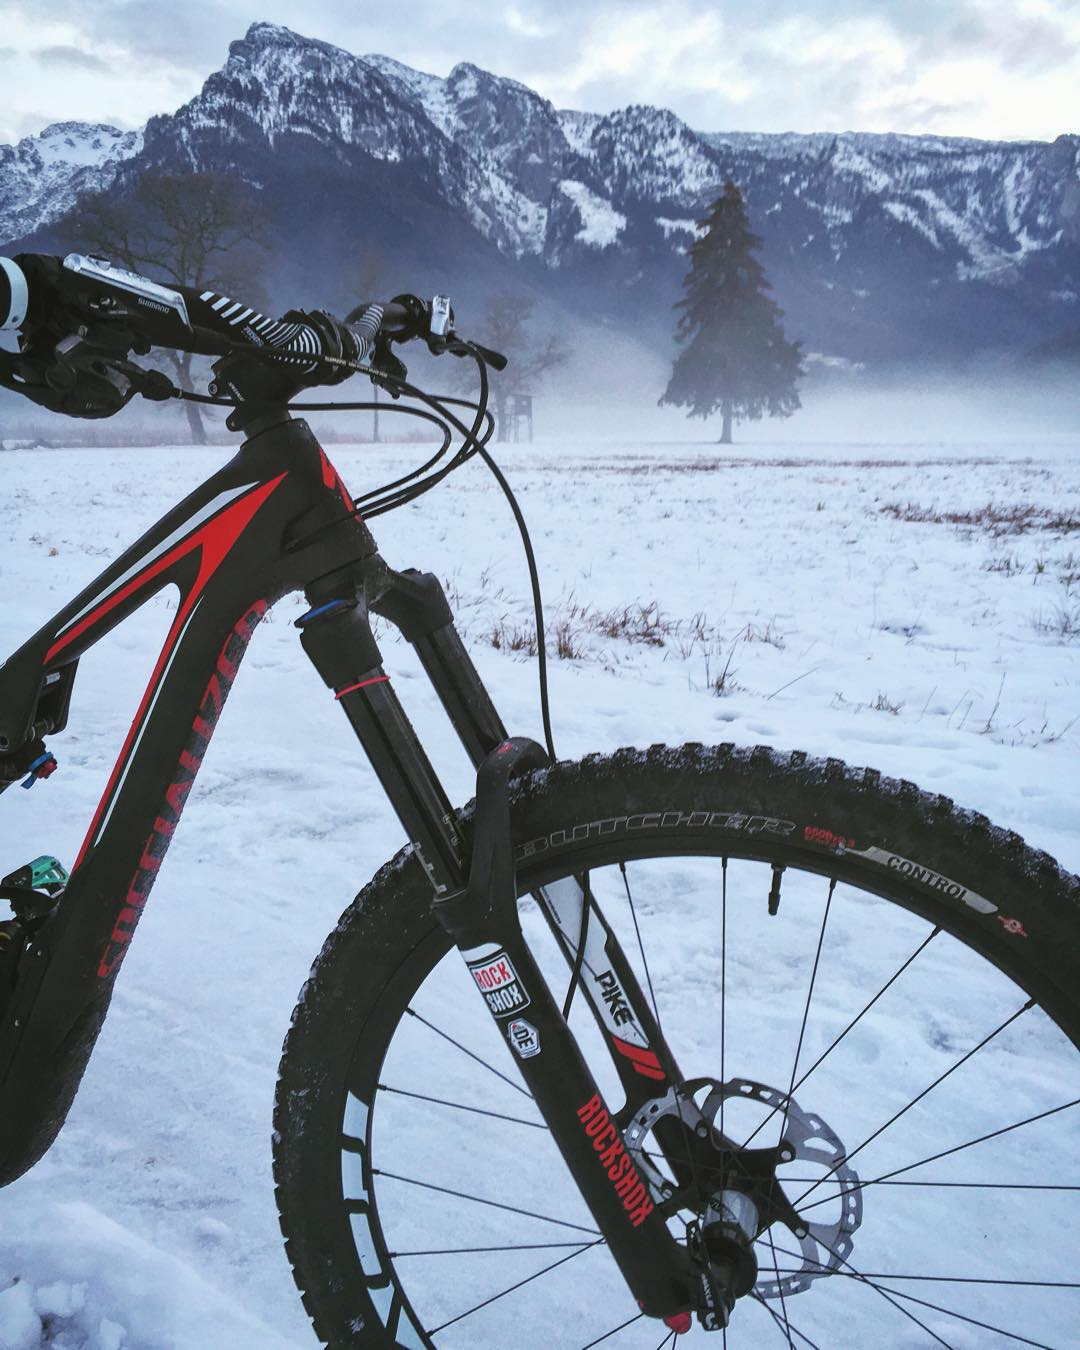 Excellent ride in the #snow today! No need to stop riding just because there is snow, it's actually surprisingly good fun to ride in :) #stumpjumperfsr #ride100percent #MTB